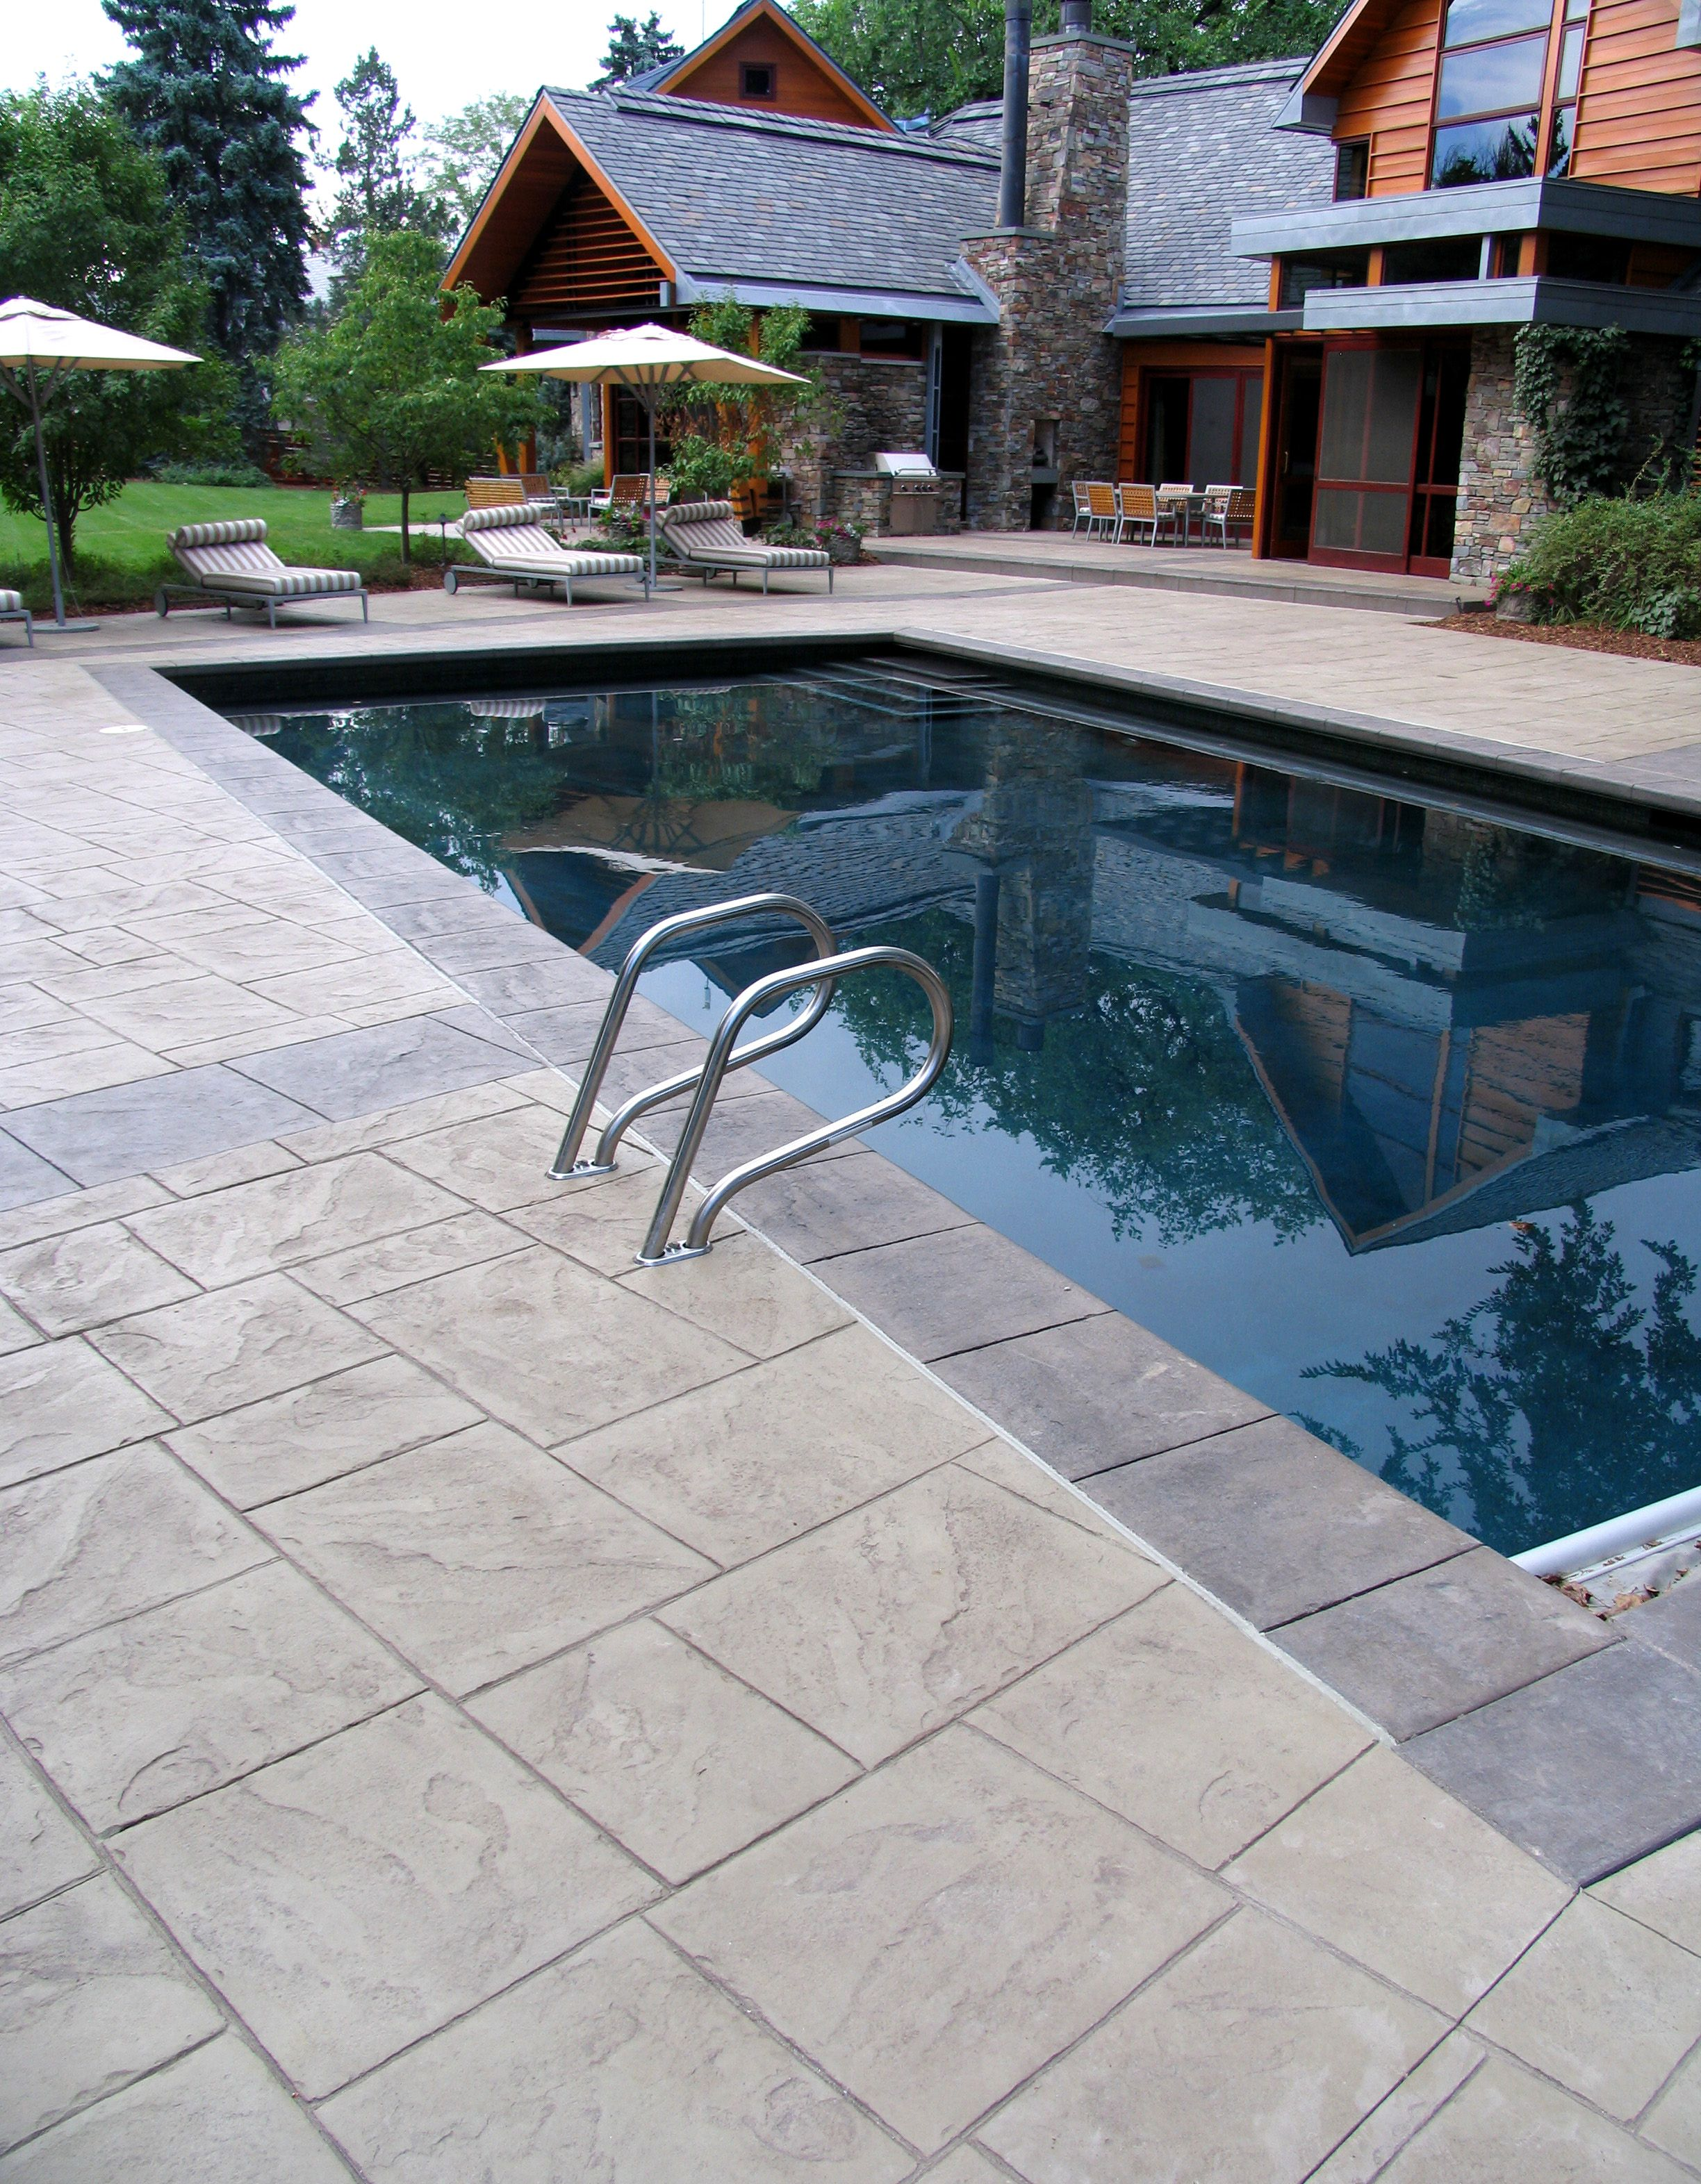 Bomanite integrally colored stamped concrete patio pliments the